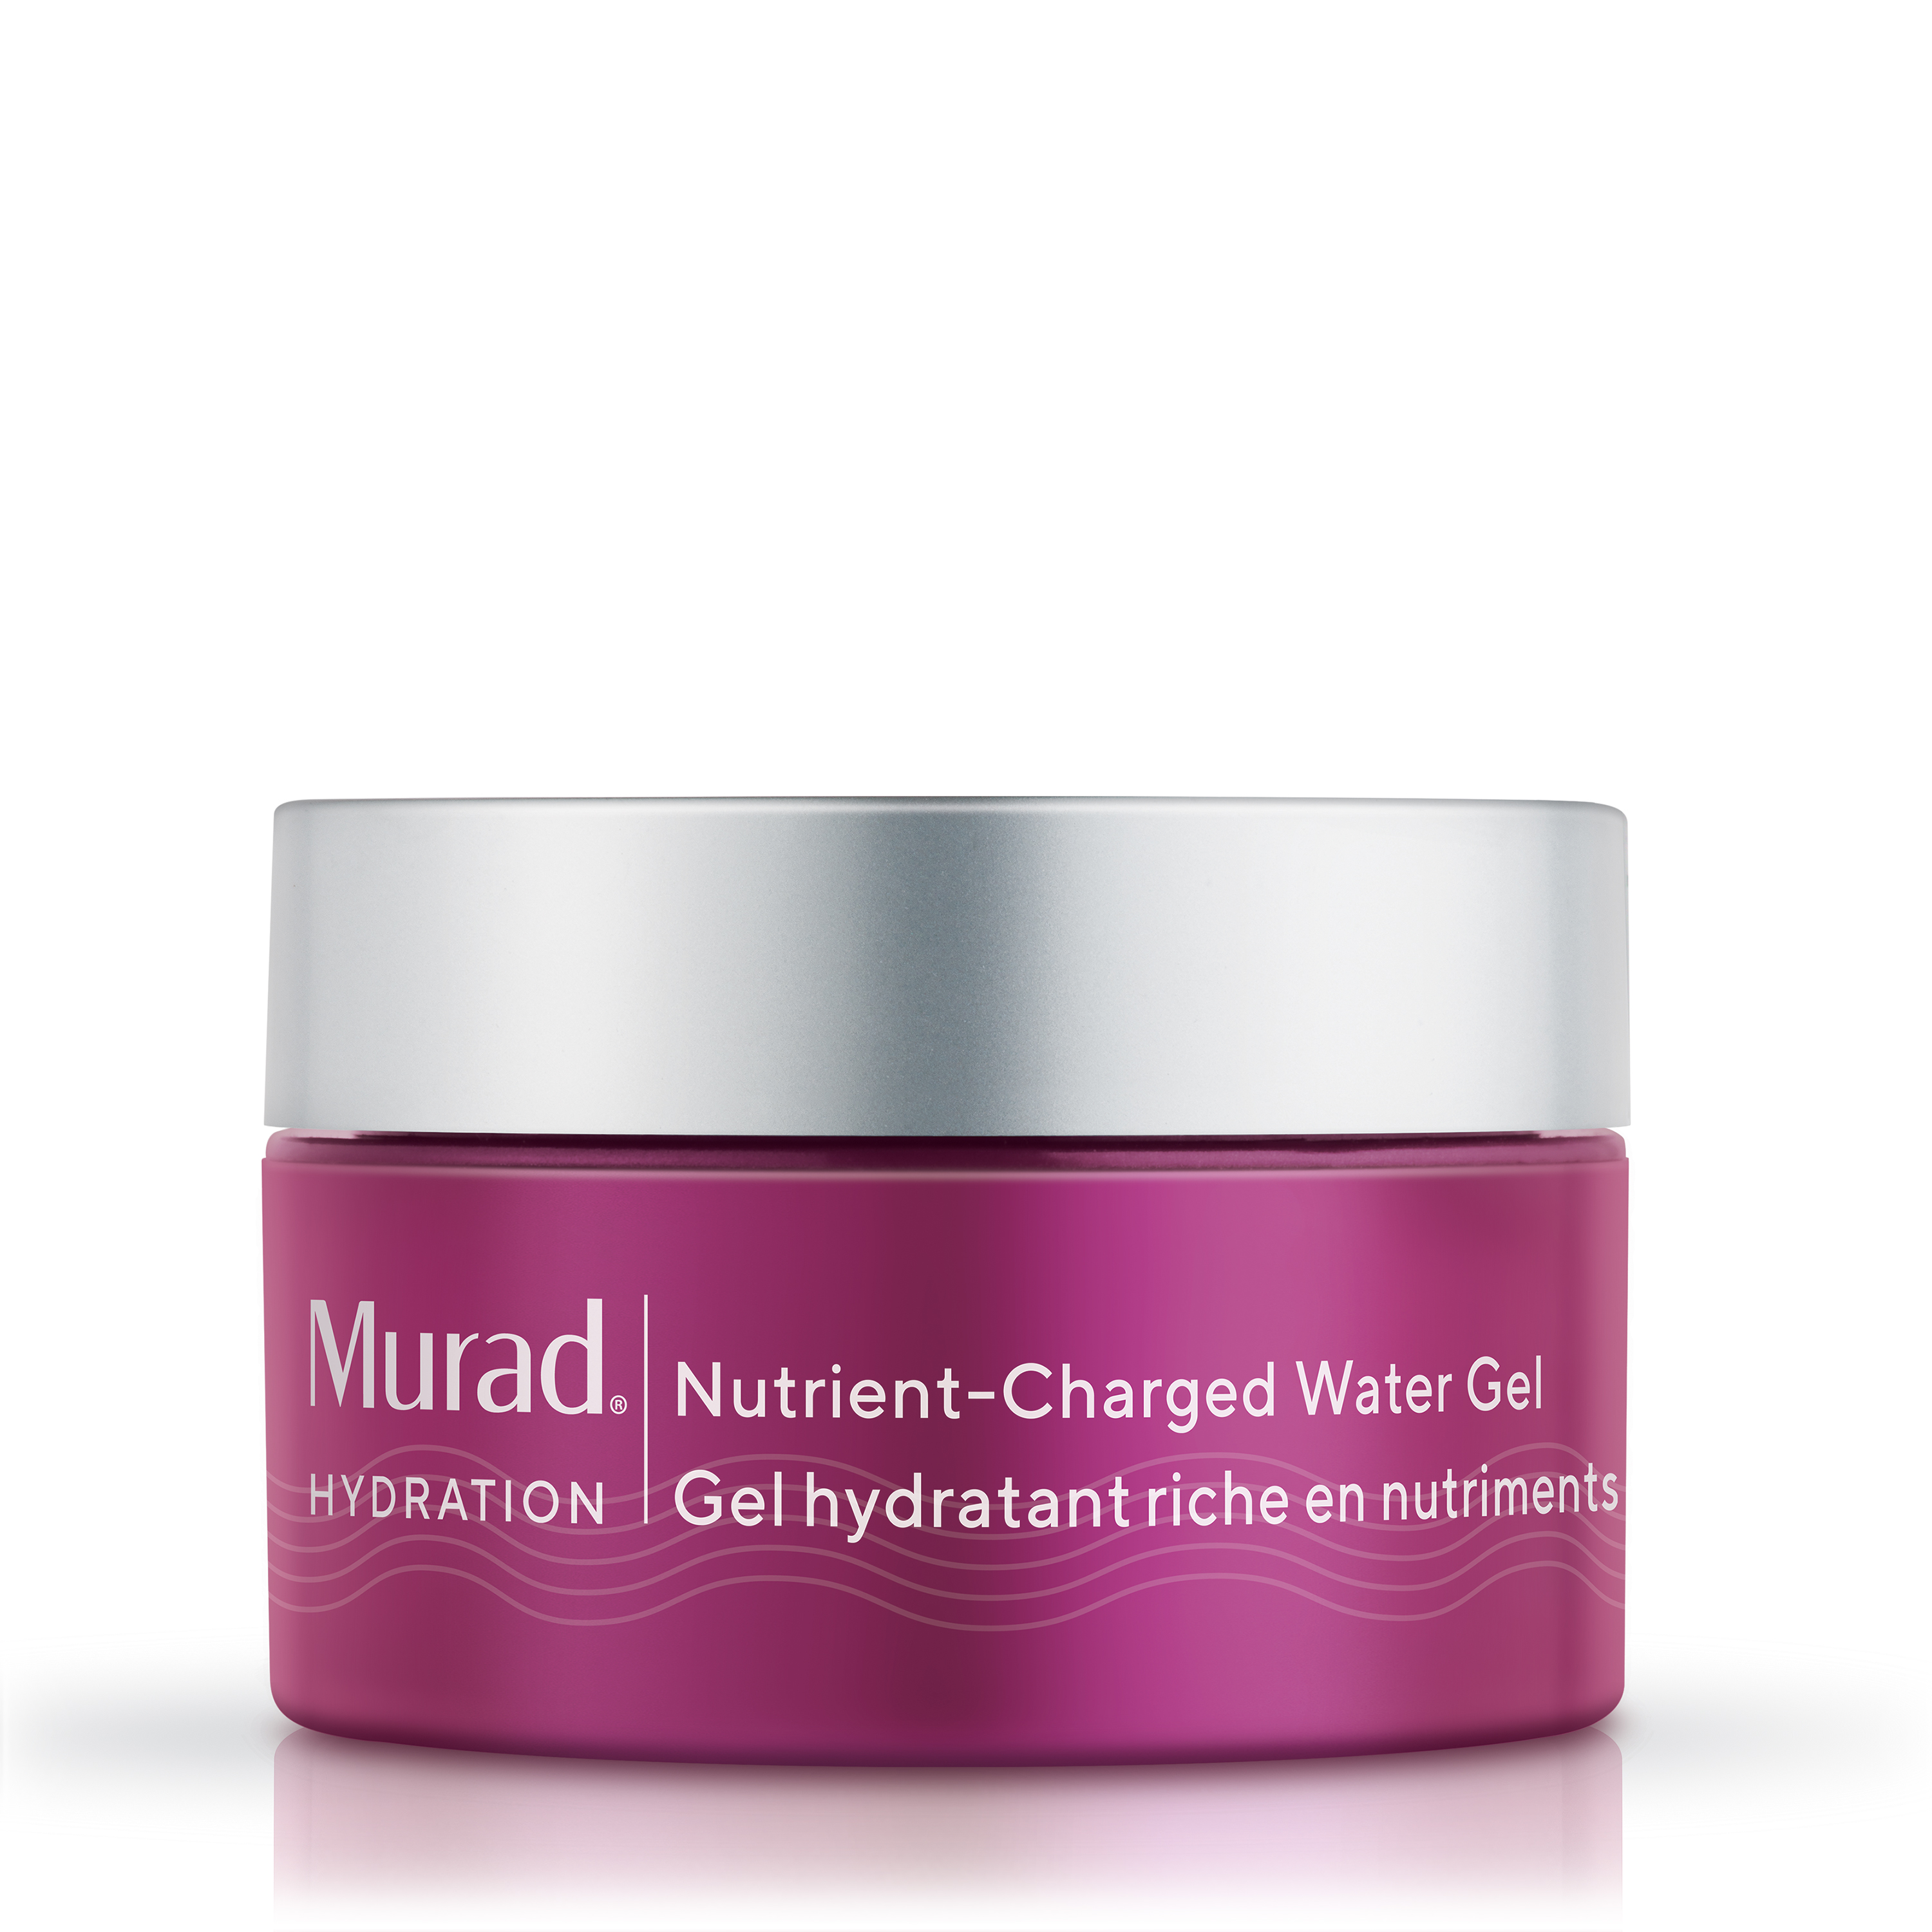 Murad Hydration Nutrient-Charged Water Gel, 50 ml